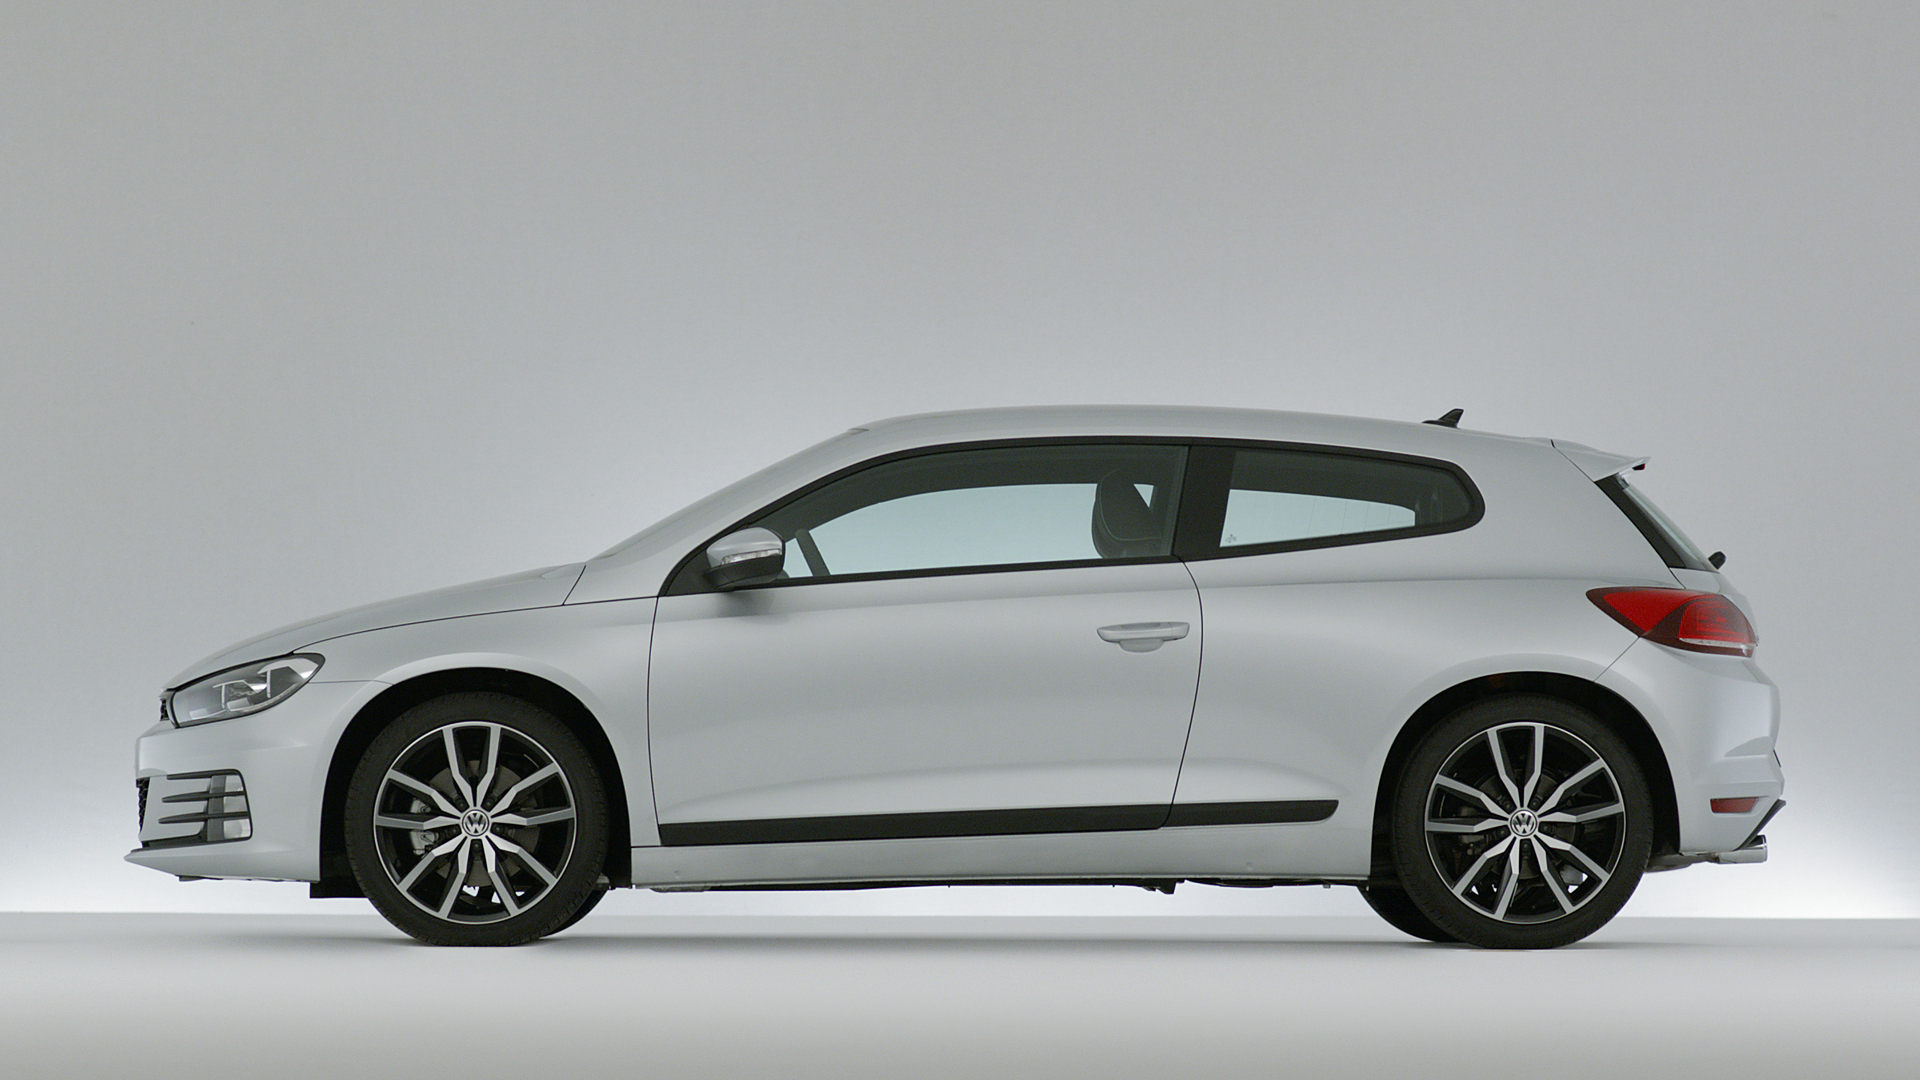 PostFactory | United Visions: VW Scirocco 2014 Teaser